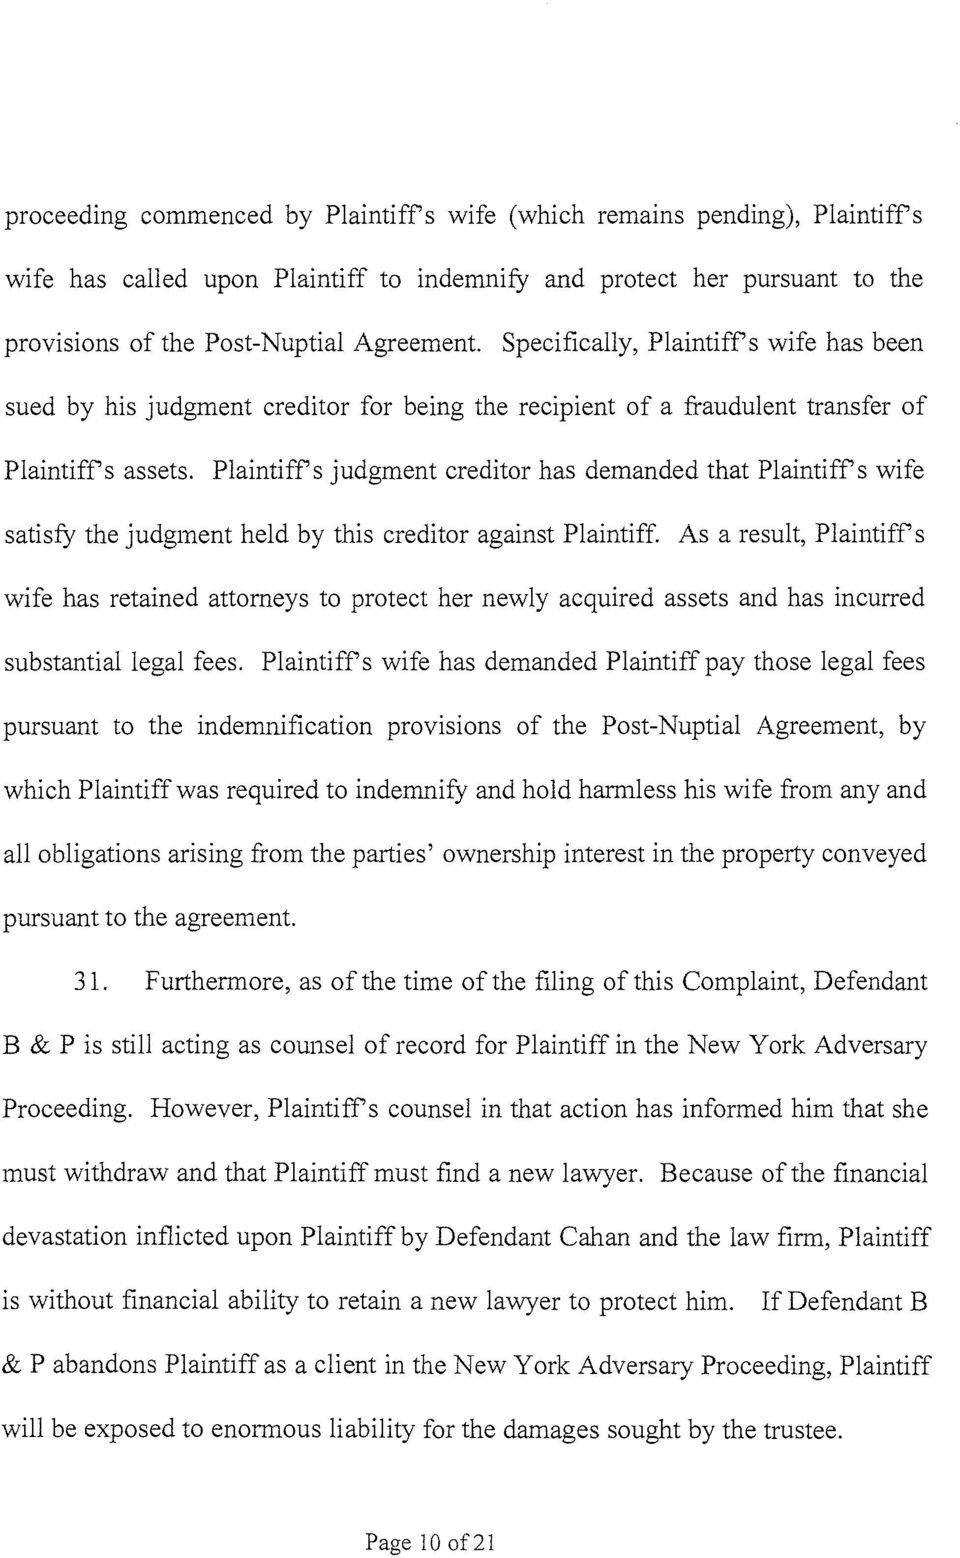 Plaintiffs judgment creditor has demanded that Plaintiffs wife satisfy the judgment held by this creditor against Plaintiff.